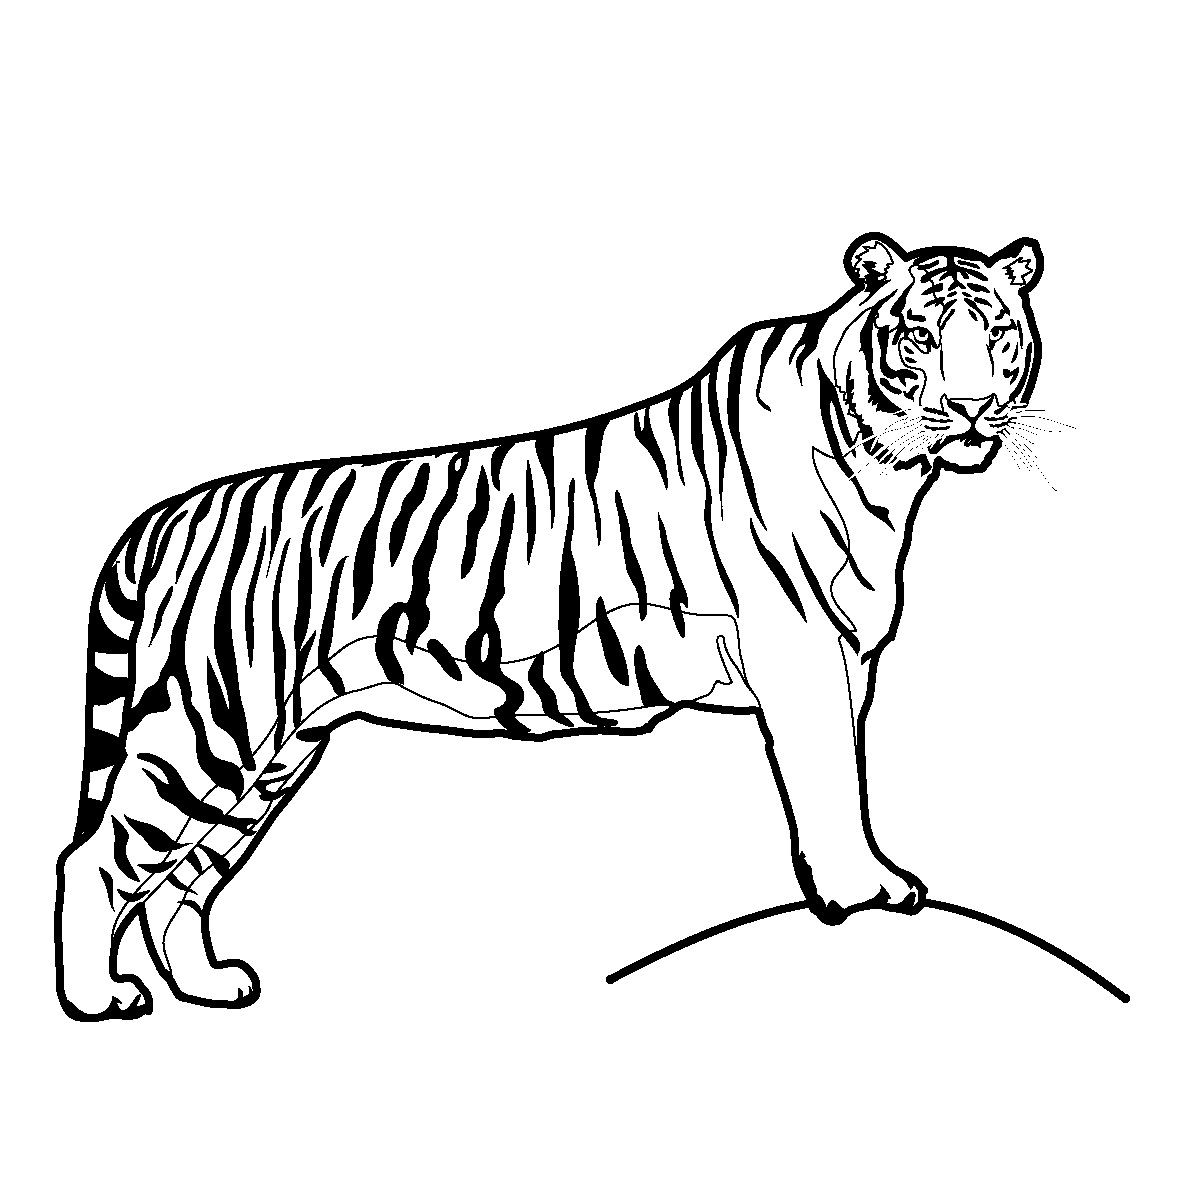 Tiger line clipart svg royalty free library Free Black And White Tiger Clipart, Download Free Clip Art, Free ... svg royalty free library